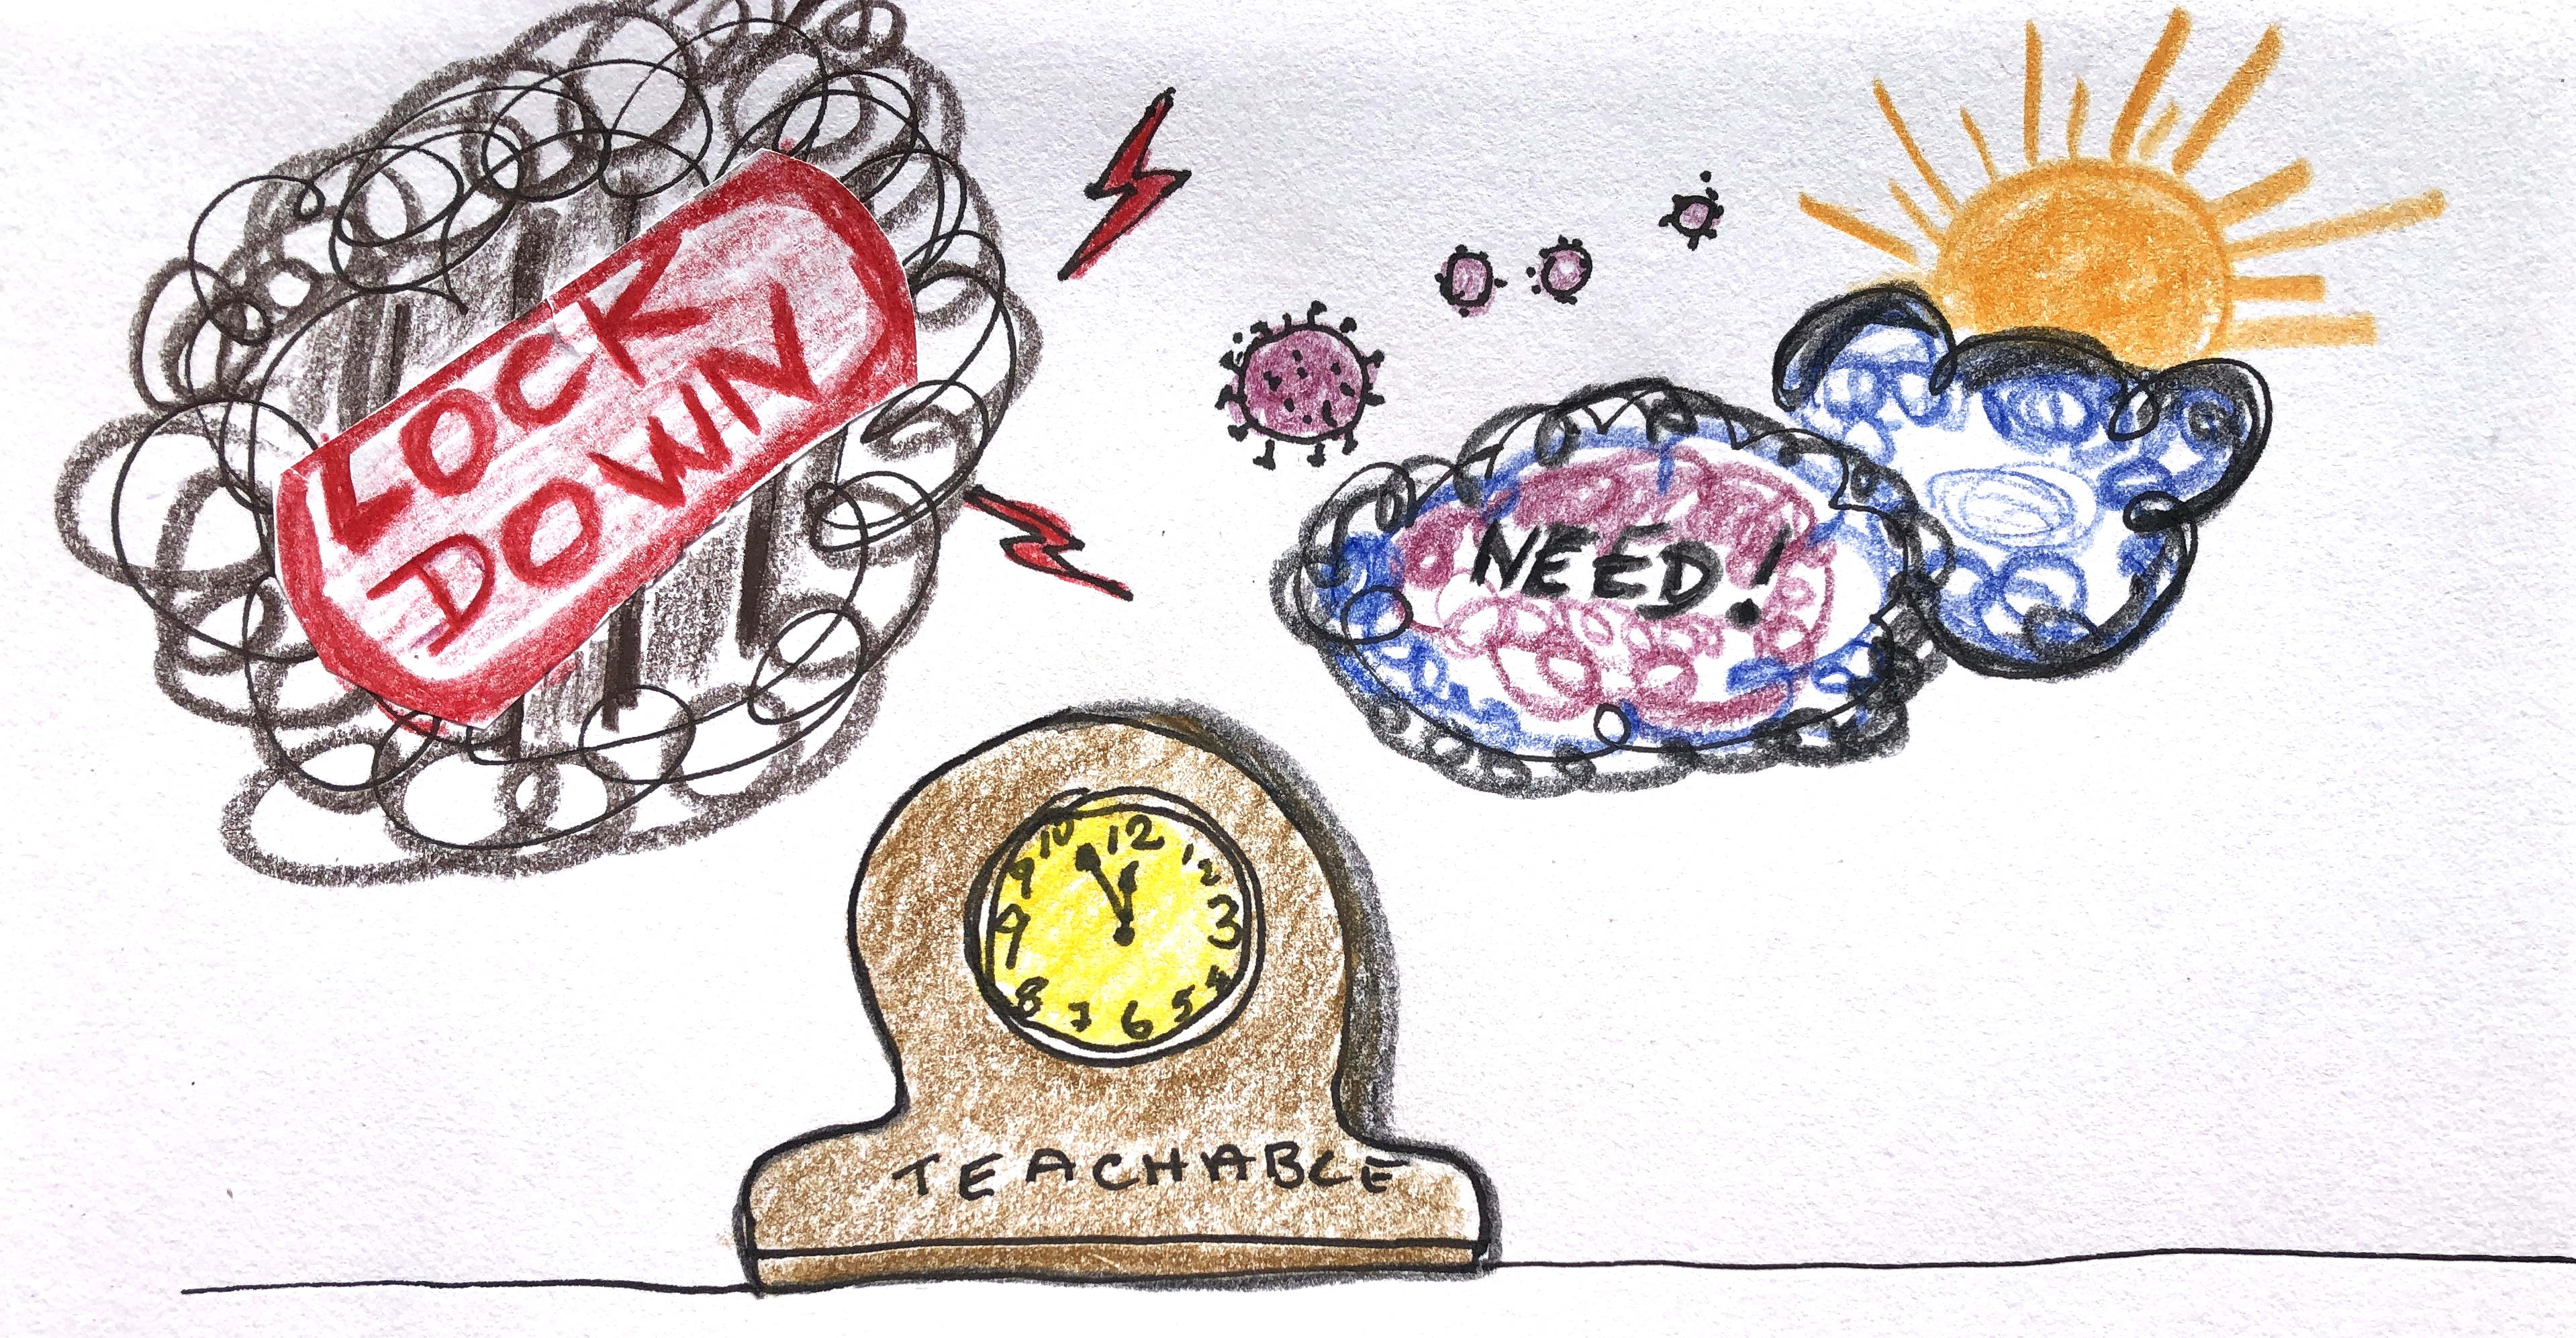 Clock says 5 to 12 beneath a lockdown cloud and a NEED cloud. is a teachable moment